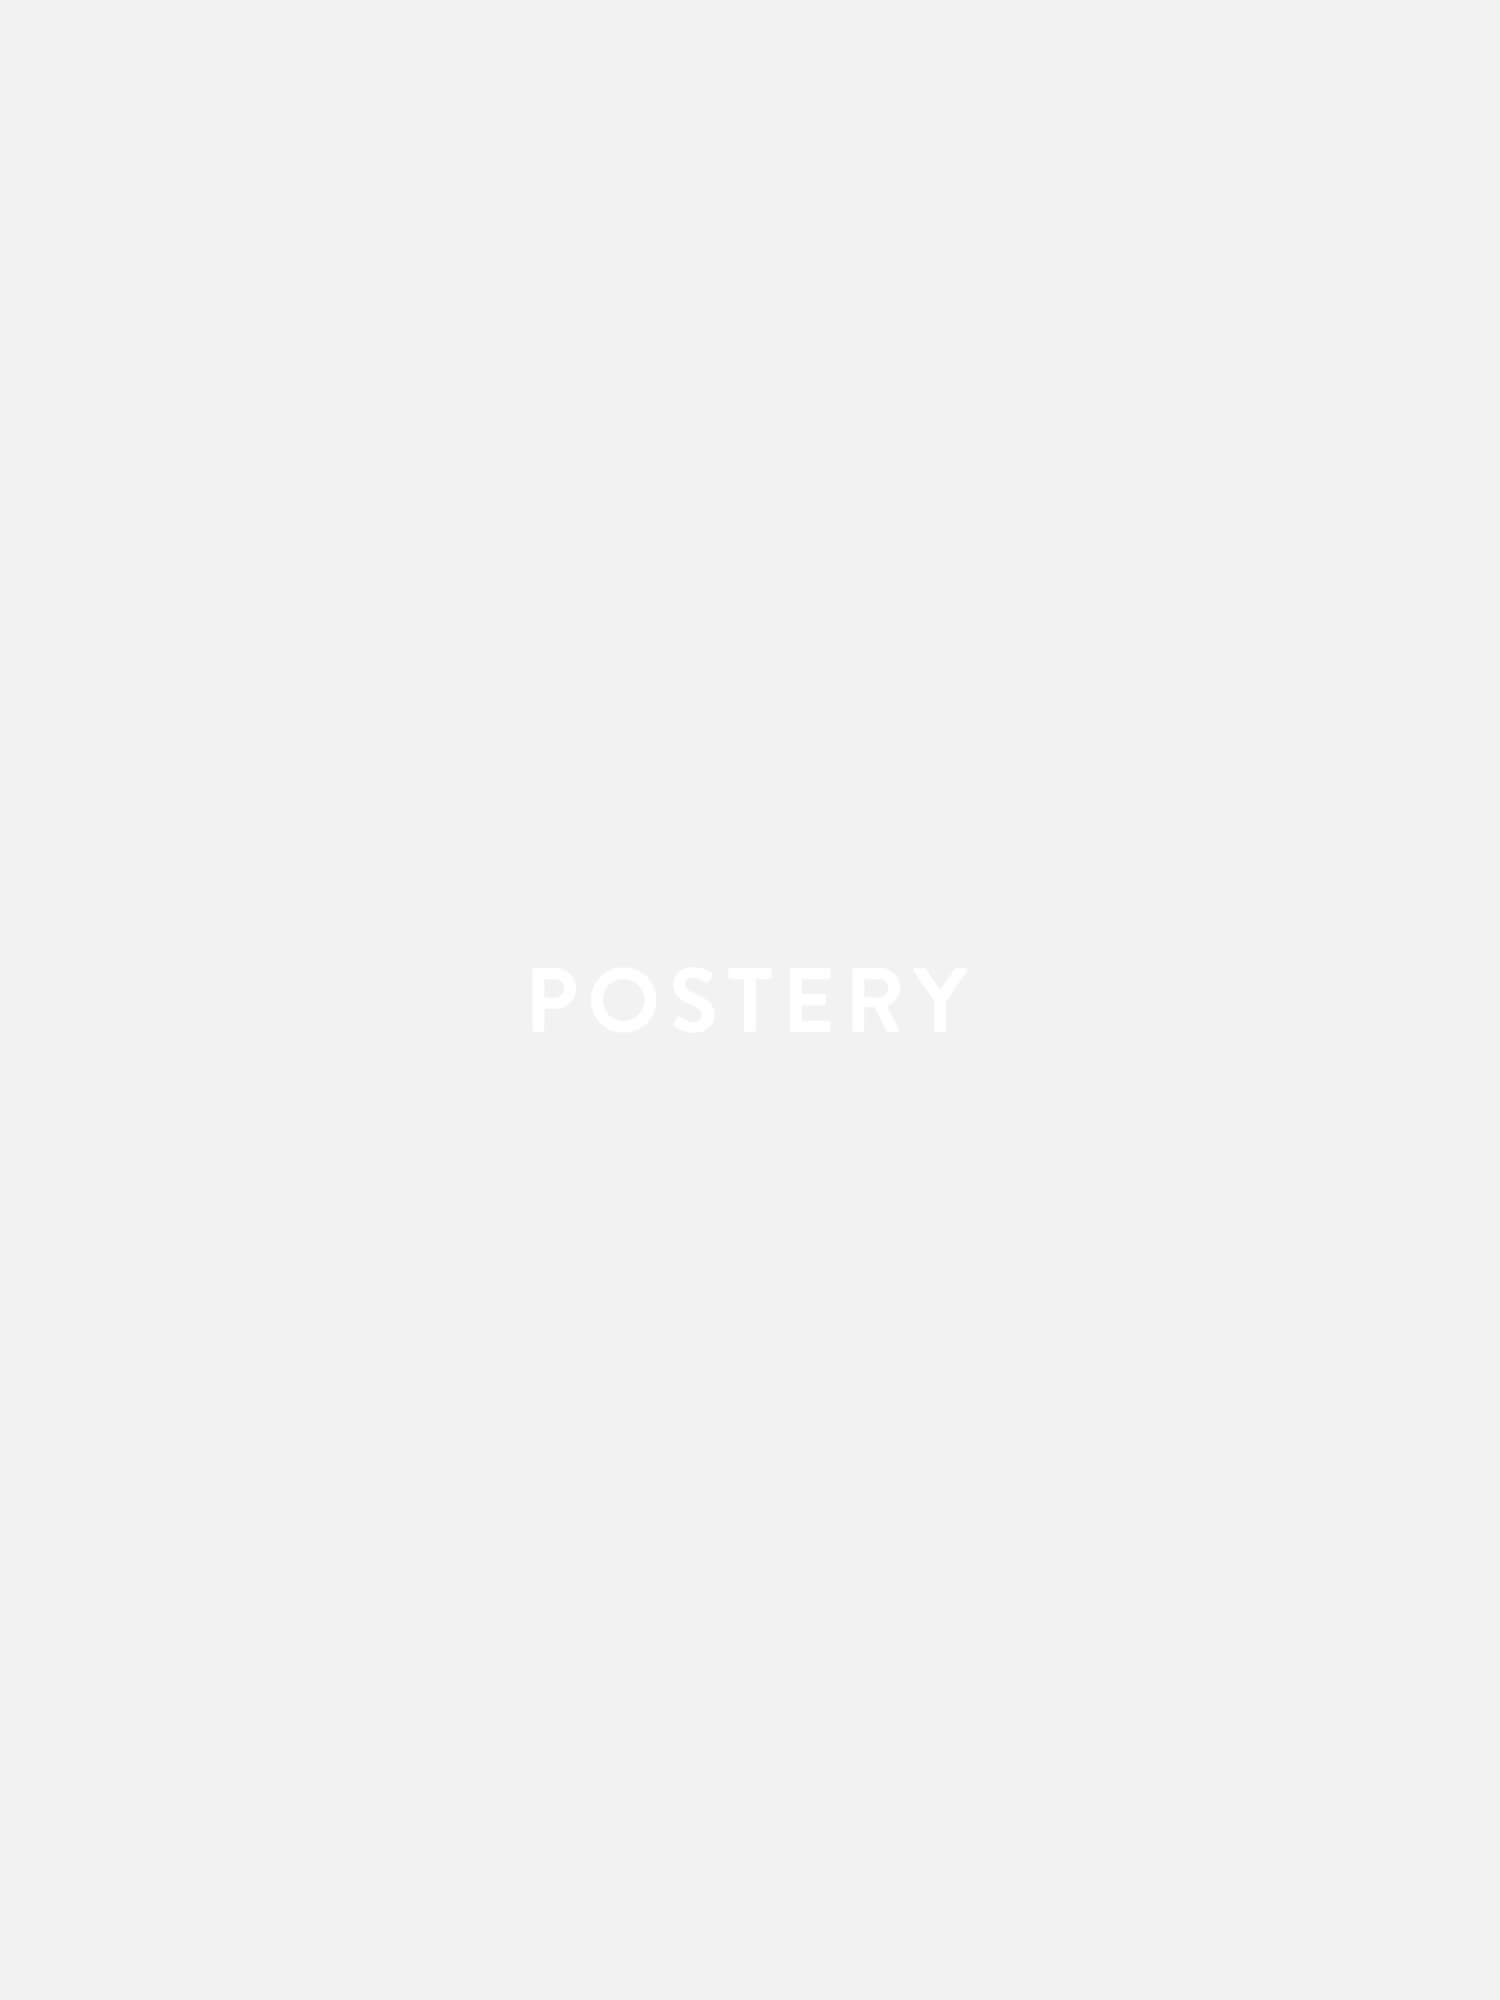 Brother Superpower Poster